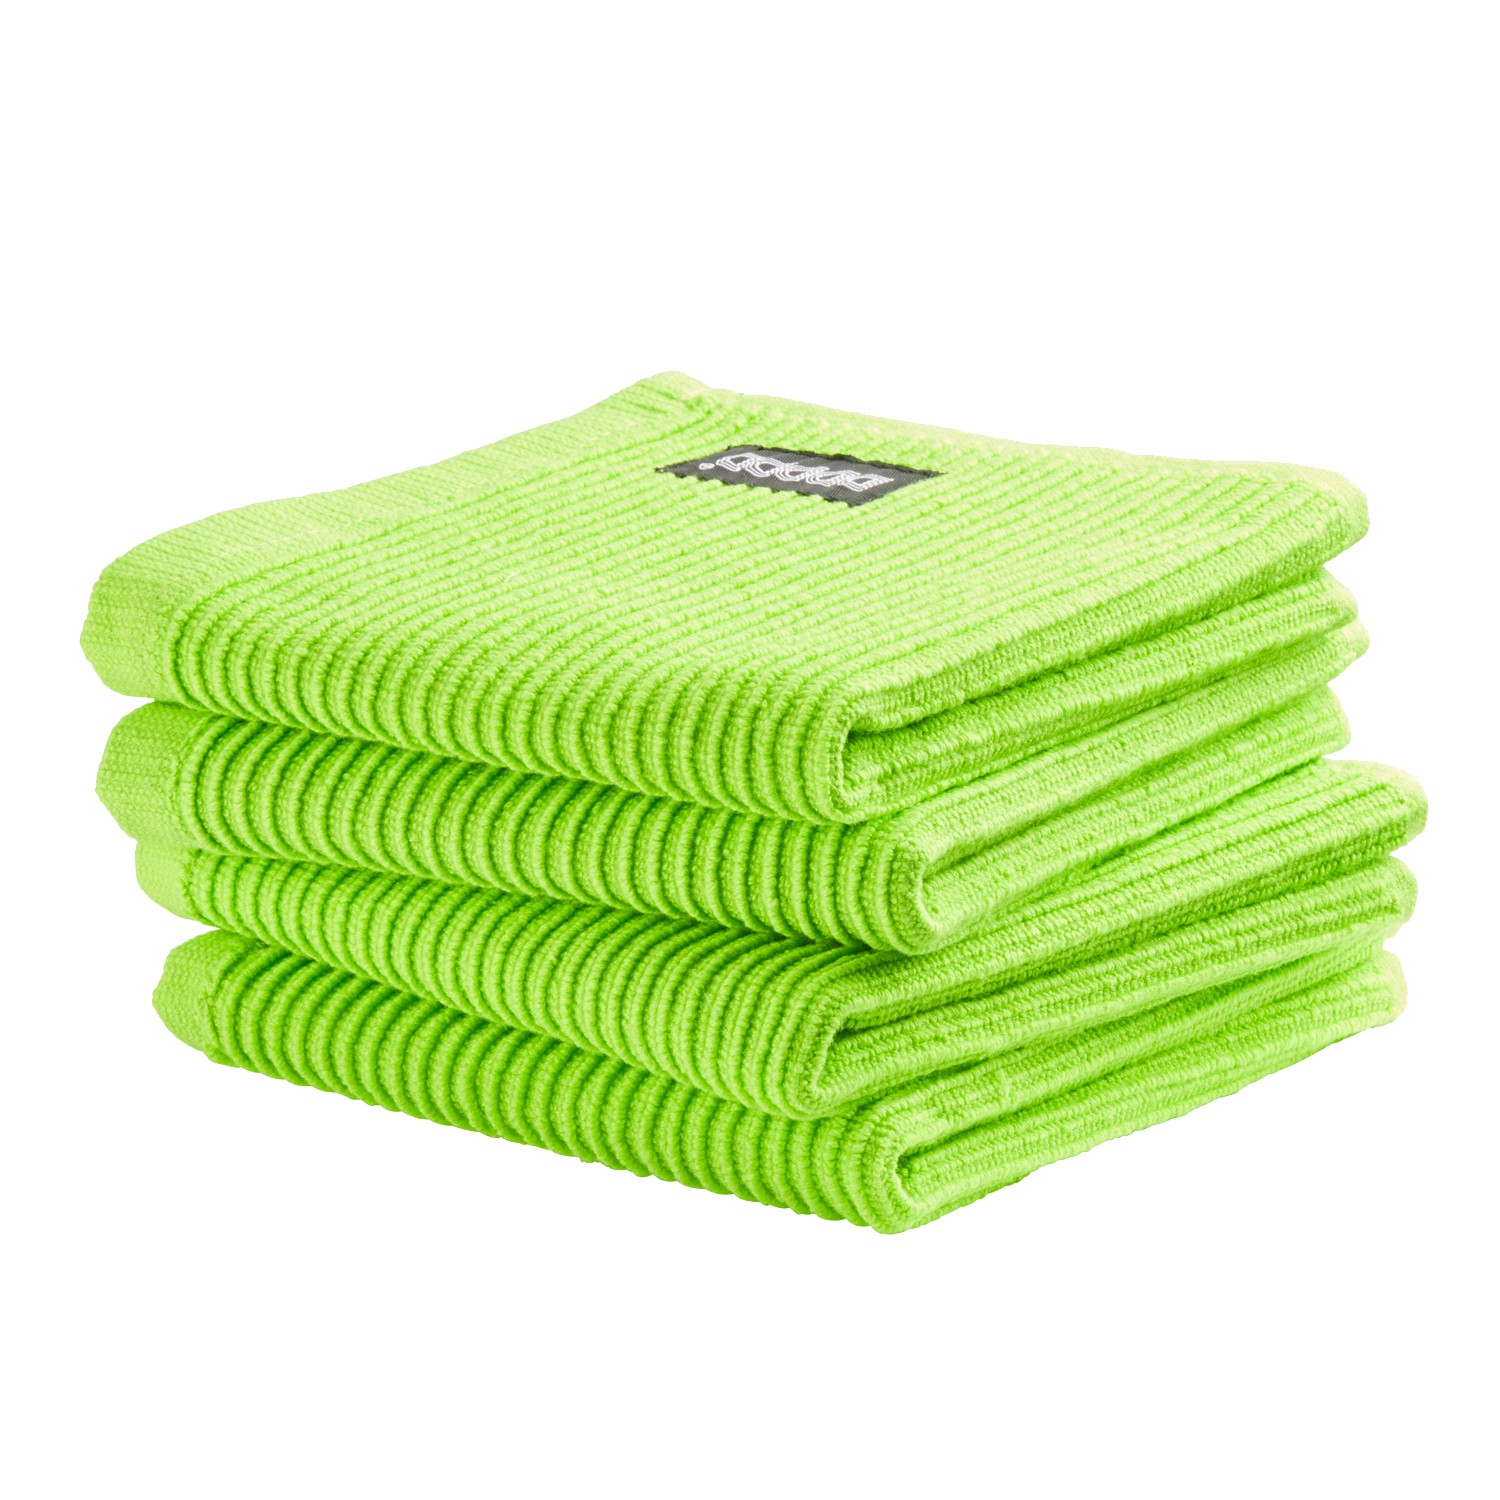 Vaatdoek Basic Clean | Bright green | 30 x 30 cm